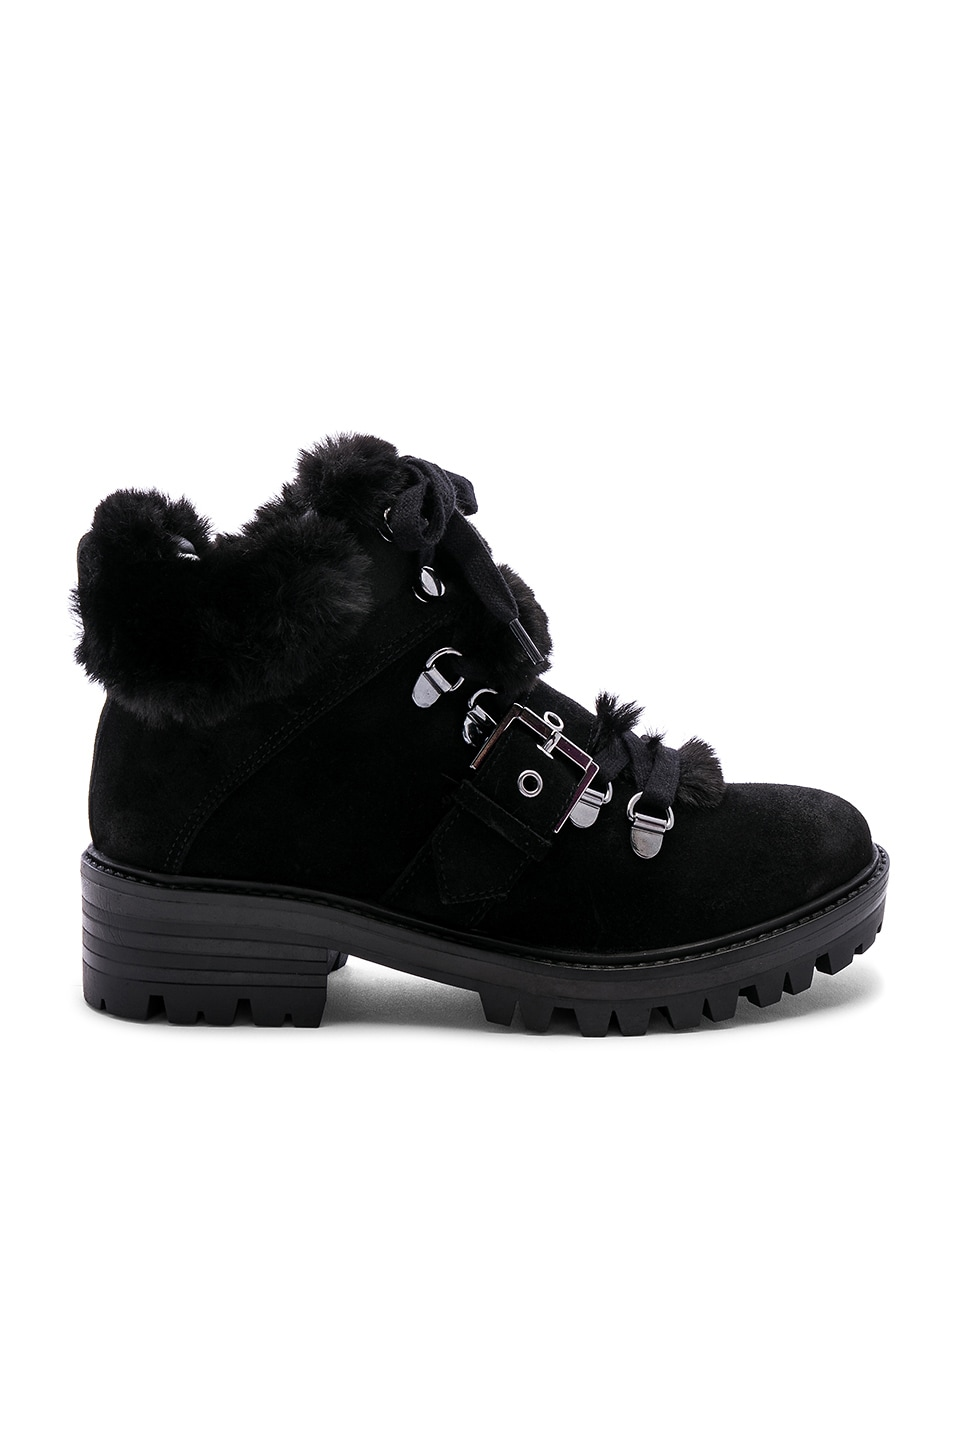 KENDALL + KYLIE Edison Faux Fur Bootie in Black